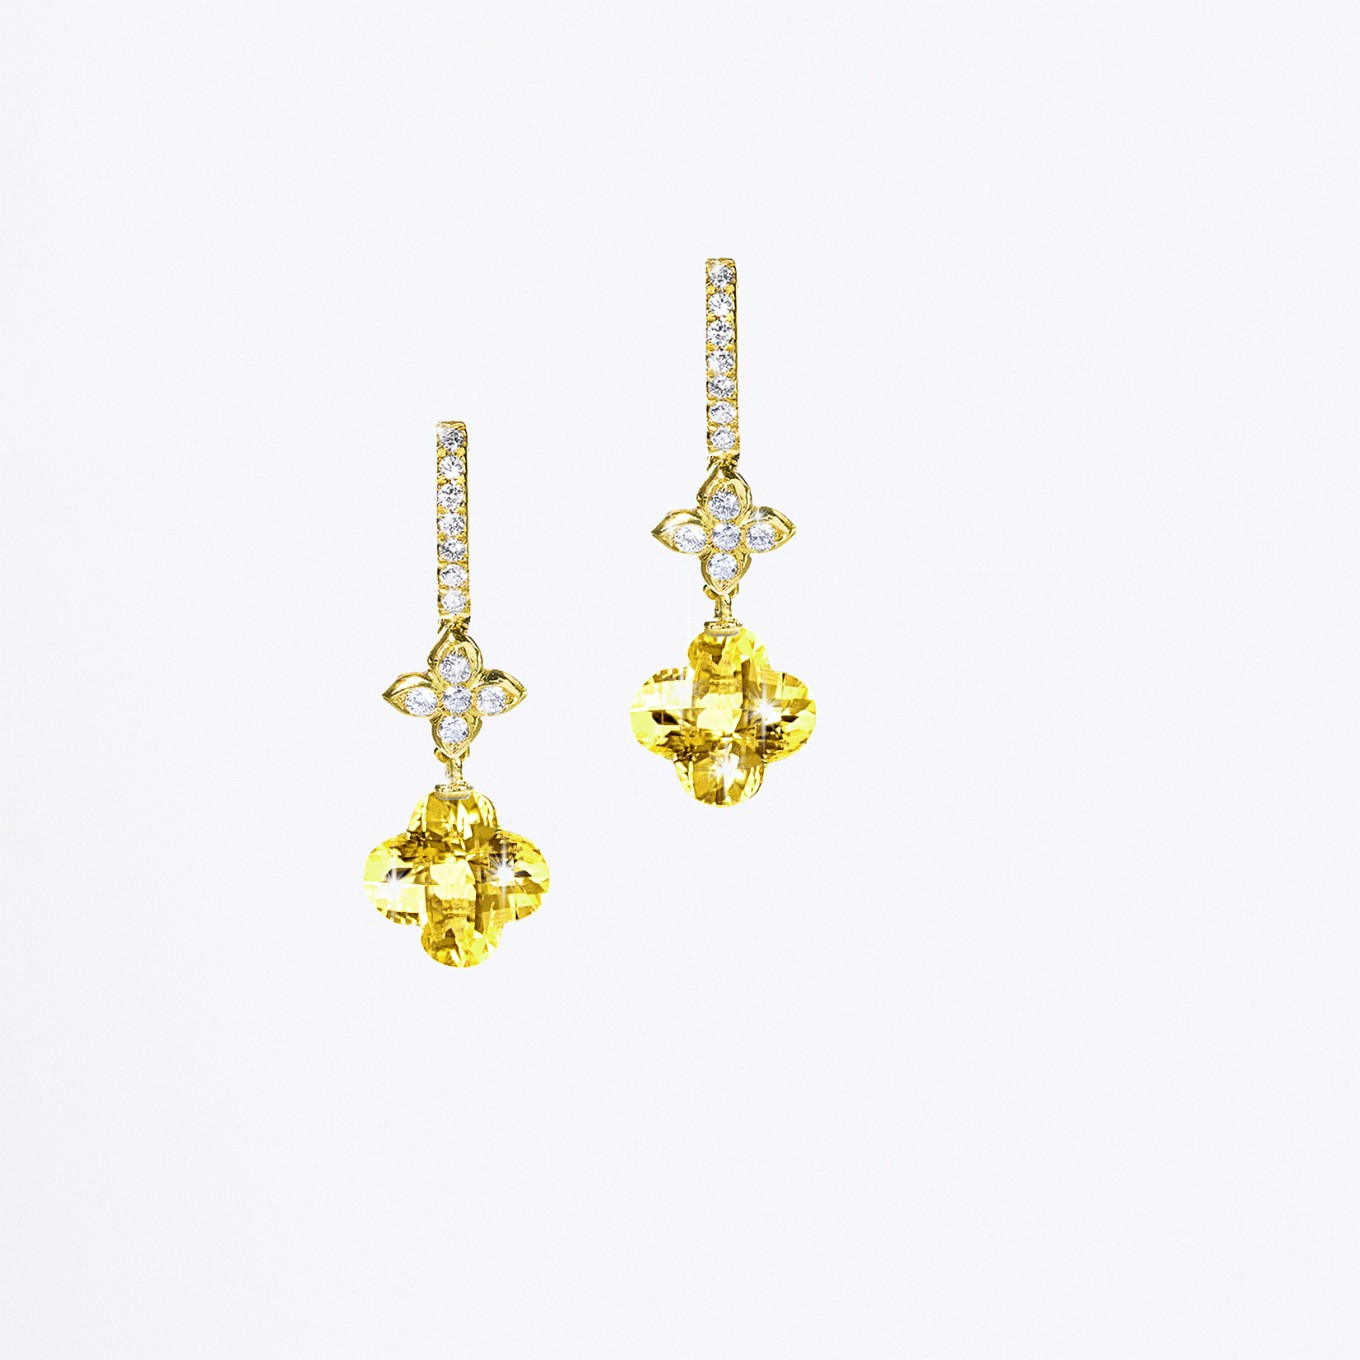 YELLOW BERYL CLOVER DROP EARRINGS IN 18 K YELLOW GOLD & DIAMONDS